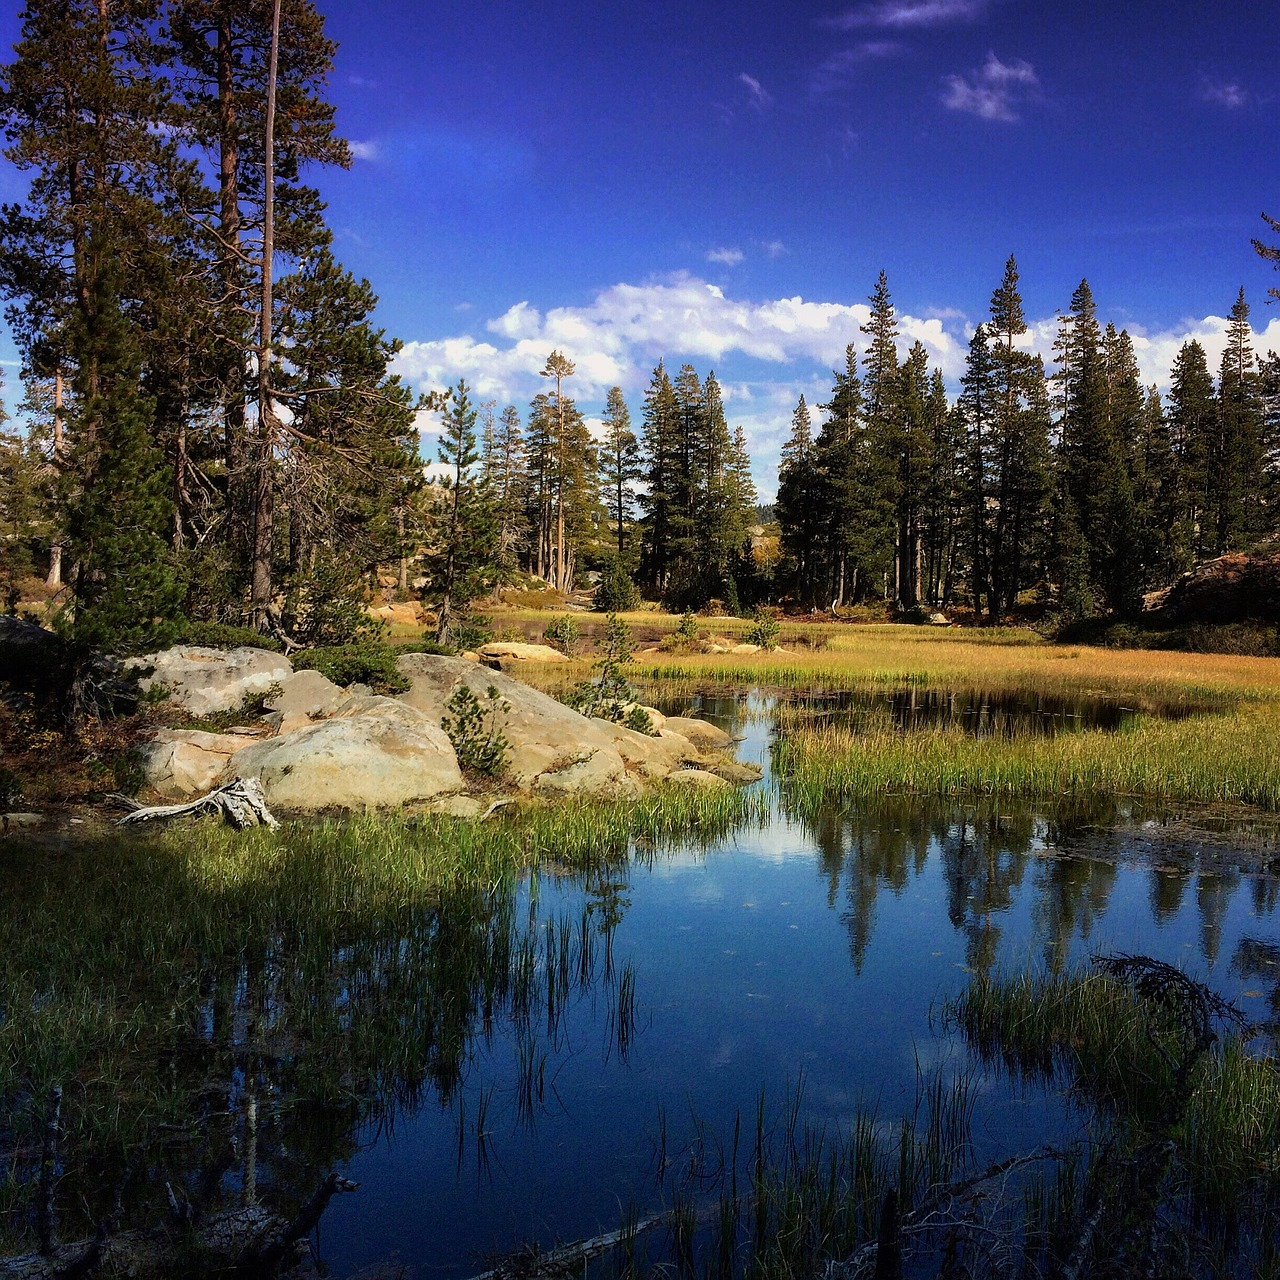 sierra nevada hiking lake free photo